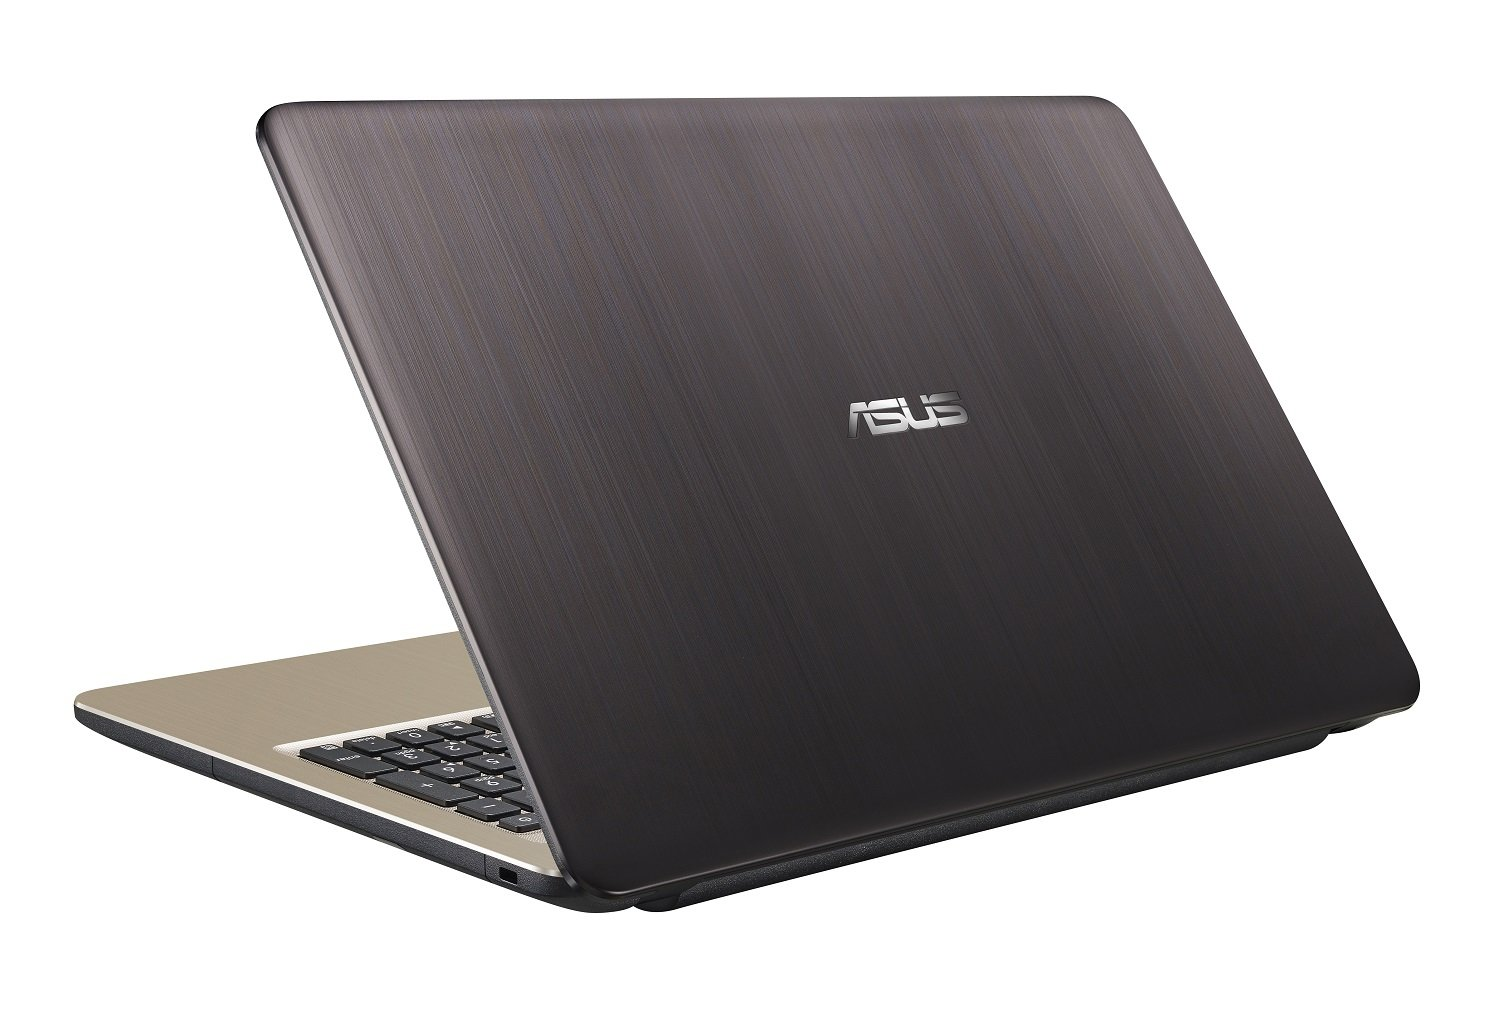 Asus R540LA-XX342T - PC portátil de 15 pulgadas dorado (Intel Core i3, 4 GB de RAM, disco duro de 1 TB, Windows 10, WO/ODD).: Amazon.es: Informática